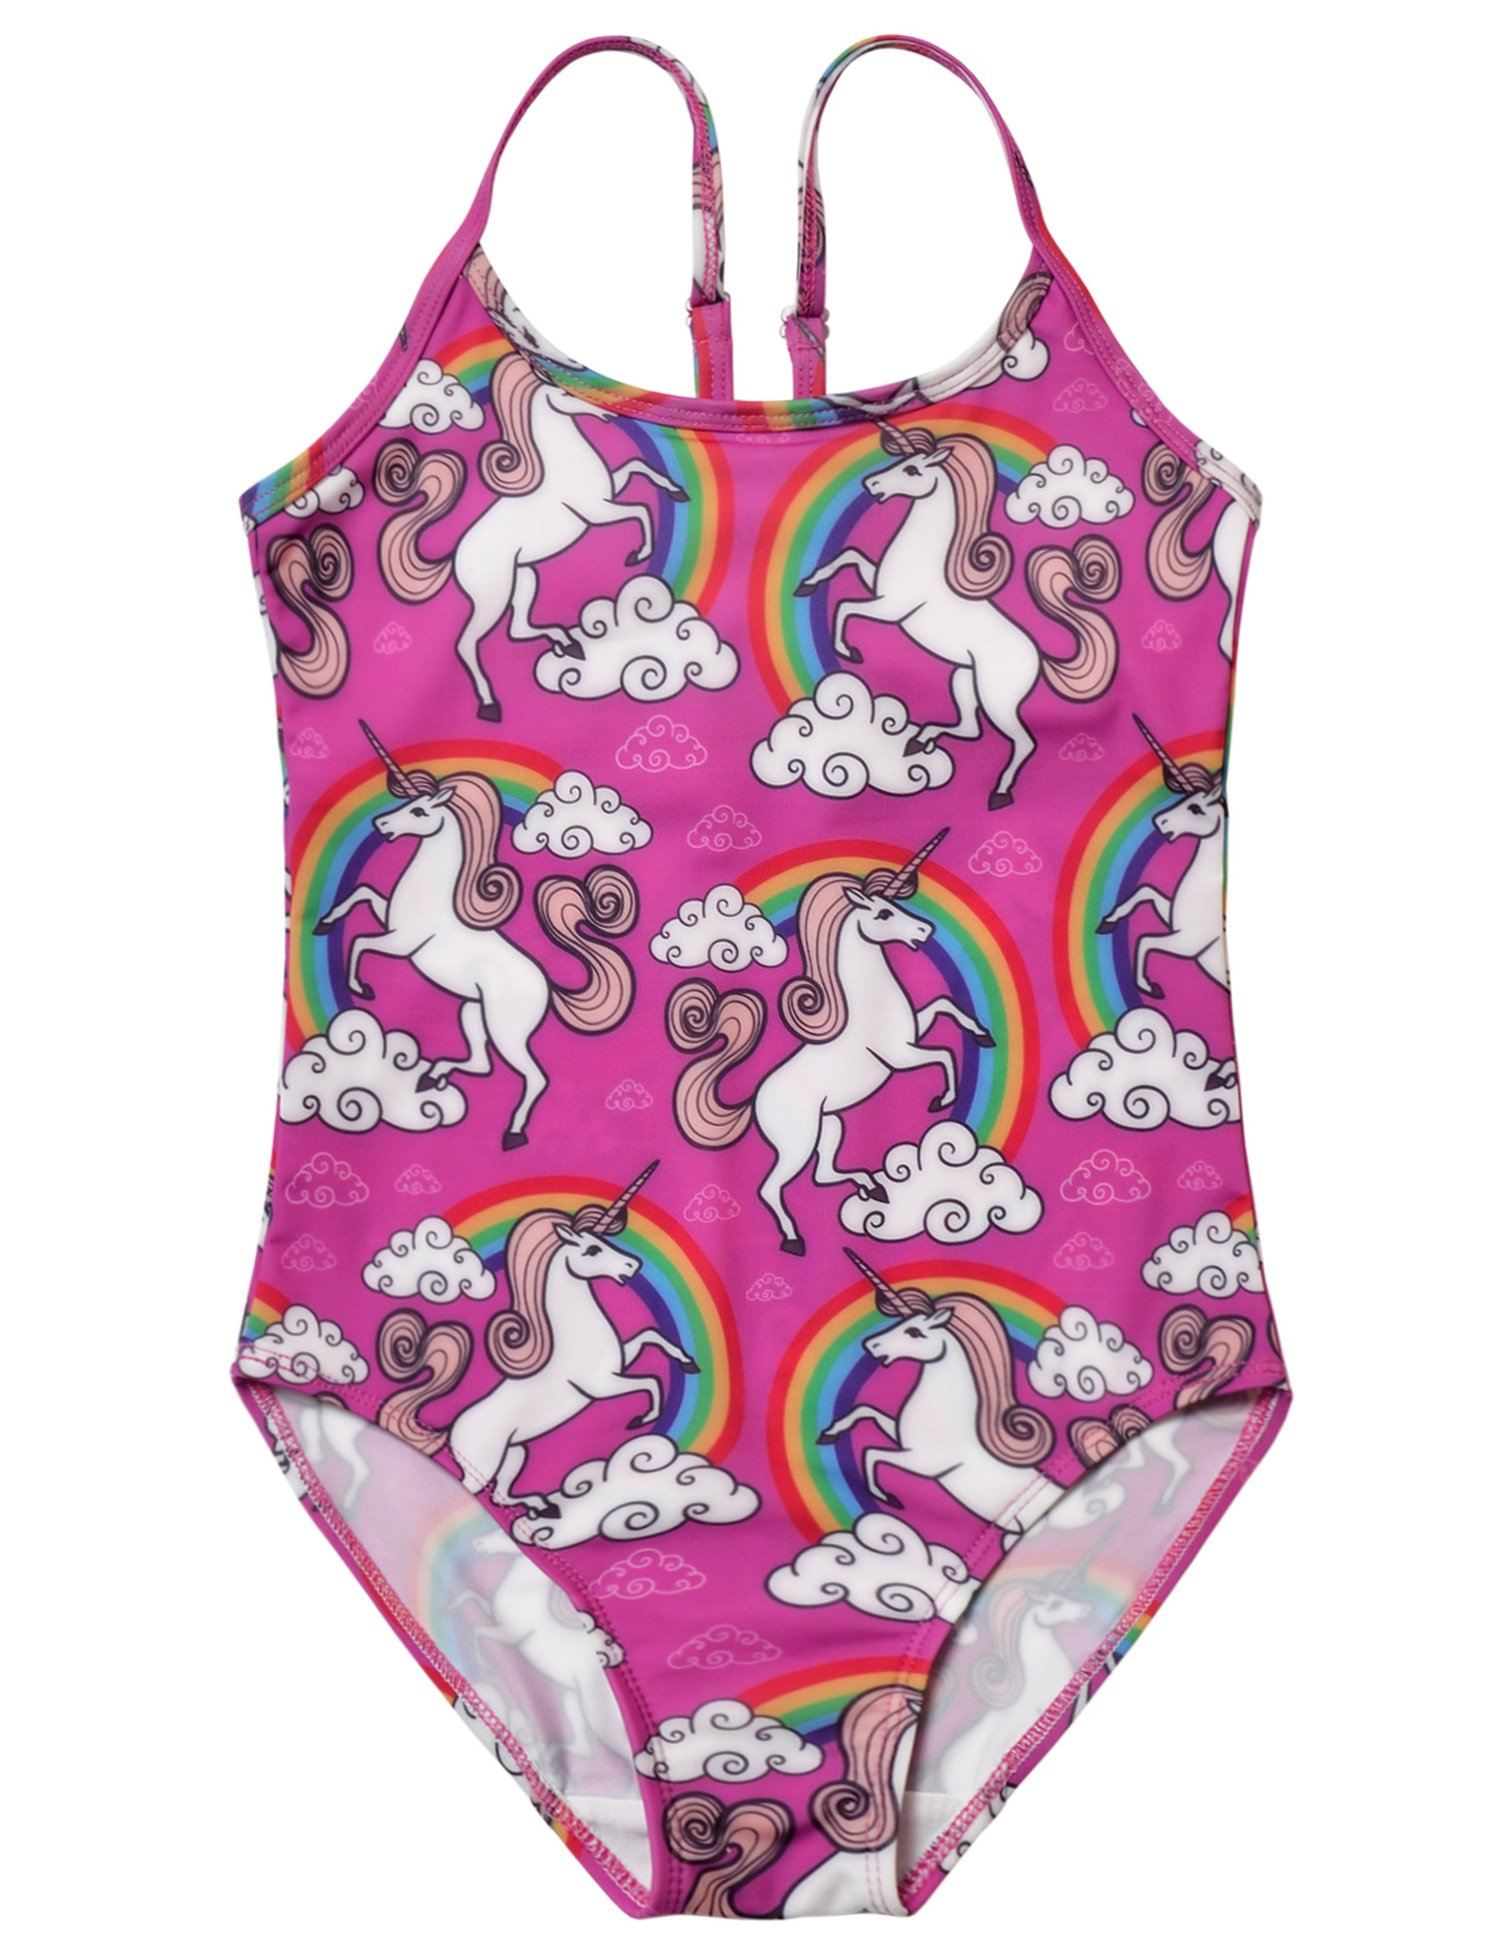 Jxstar girls bathing suit bathing suits for kids One Piece Swimsuit little girls swimsuits swimsuits for girls kids swimsuits tfjh Unicorn 130 6-7Years/Height:48in